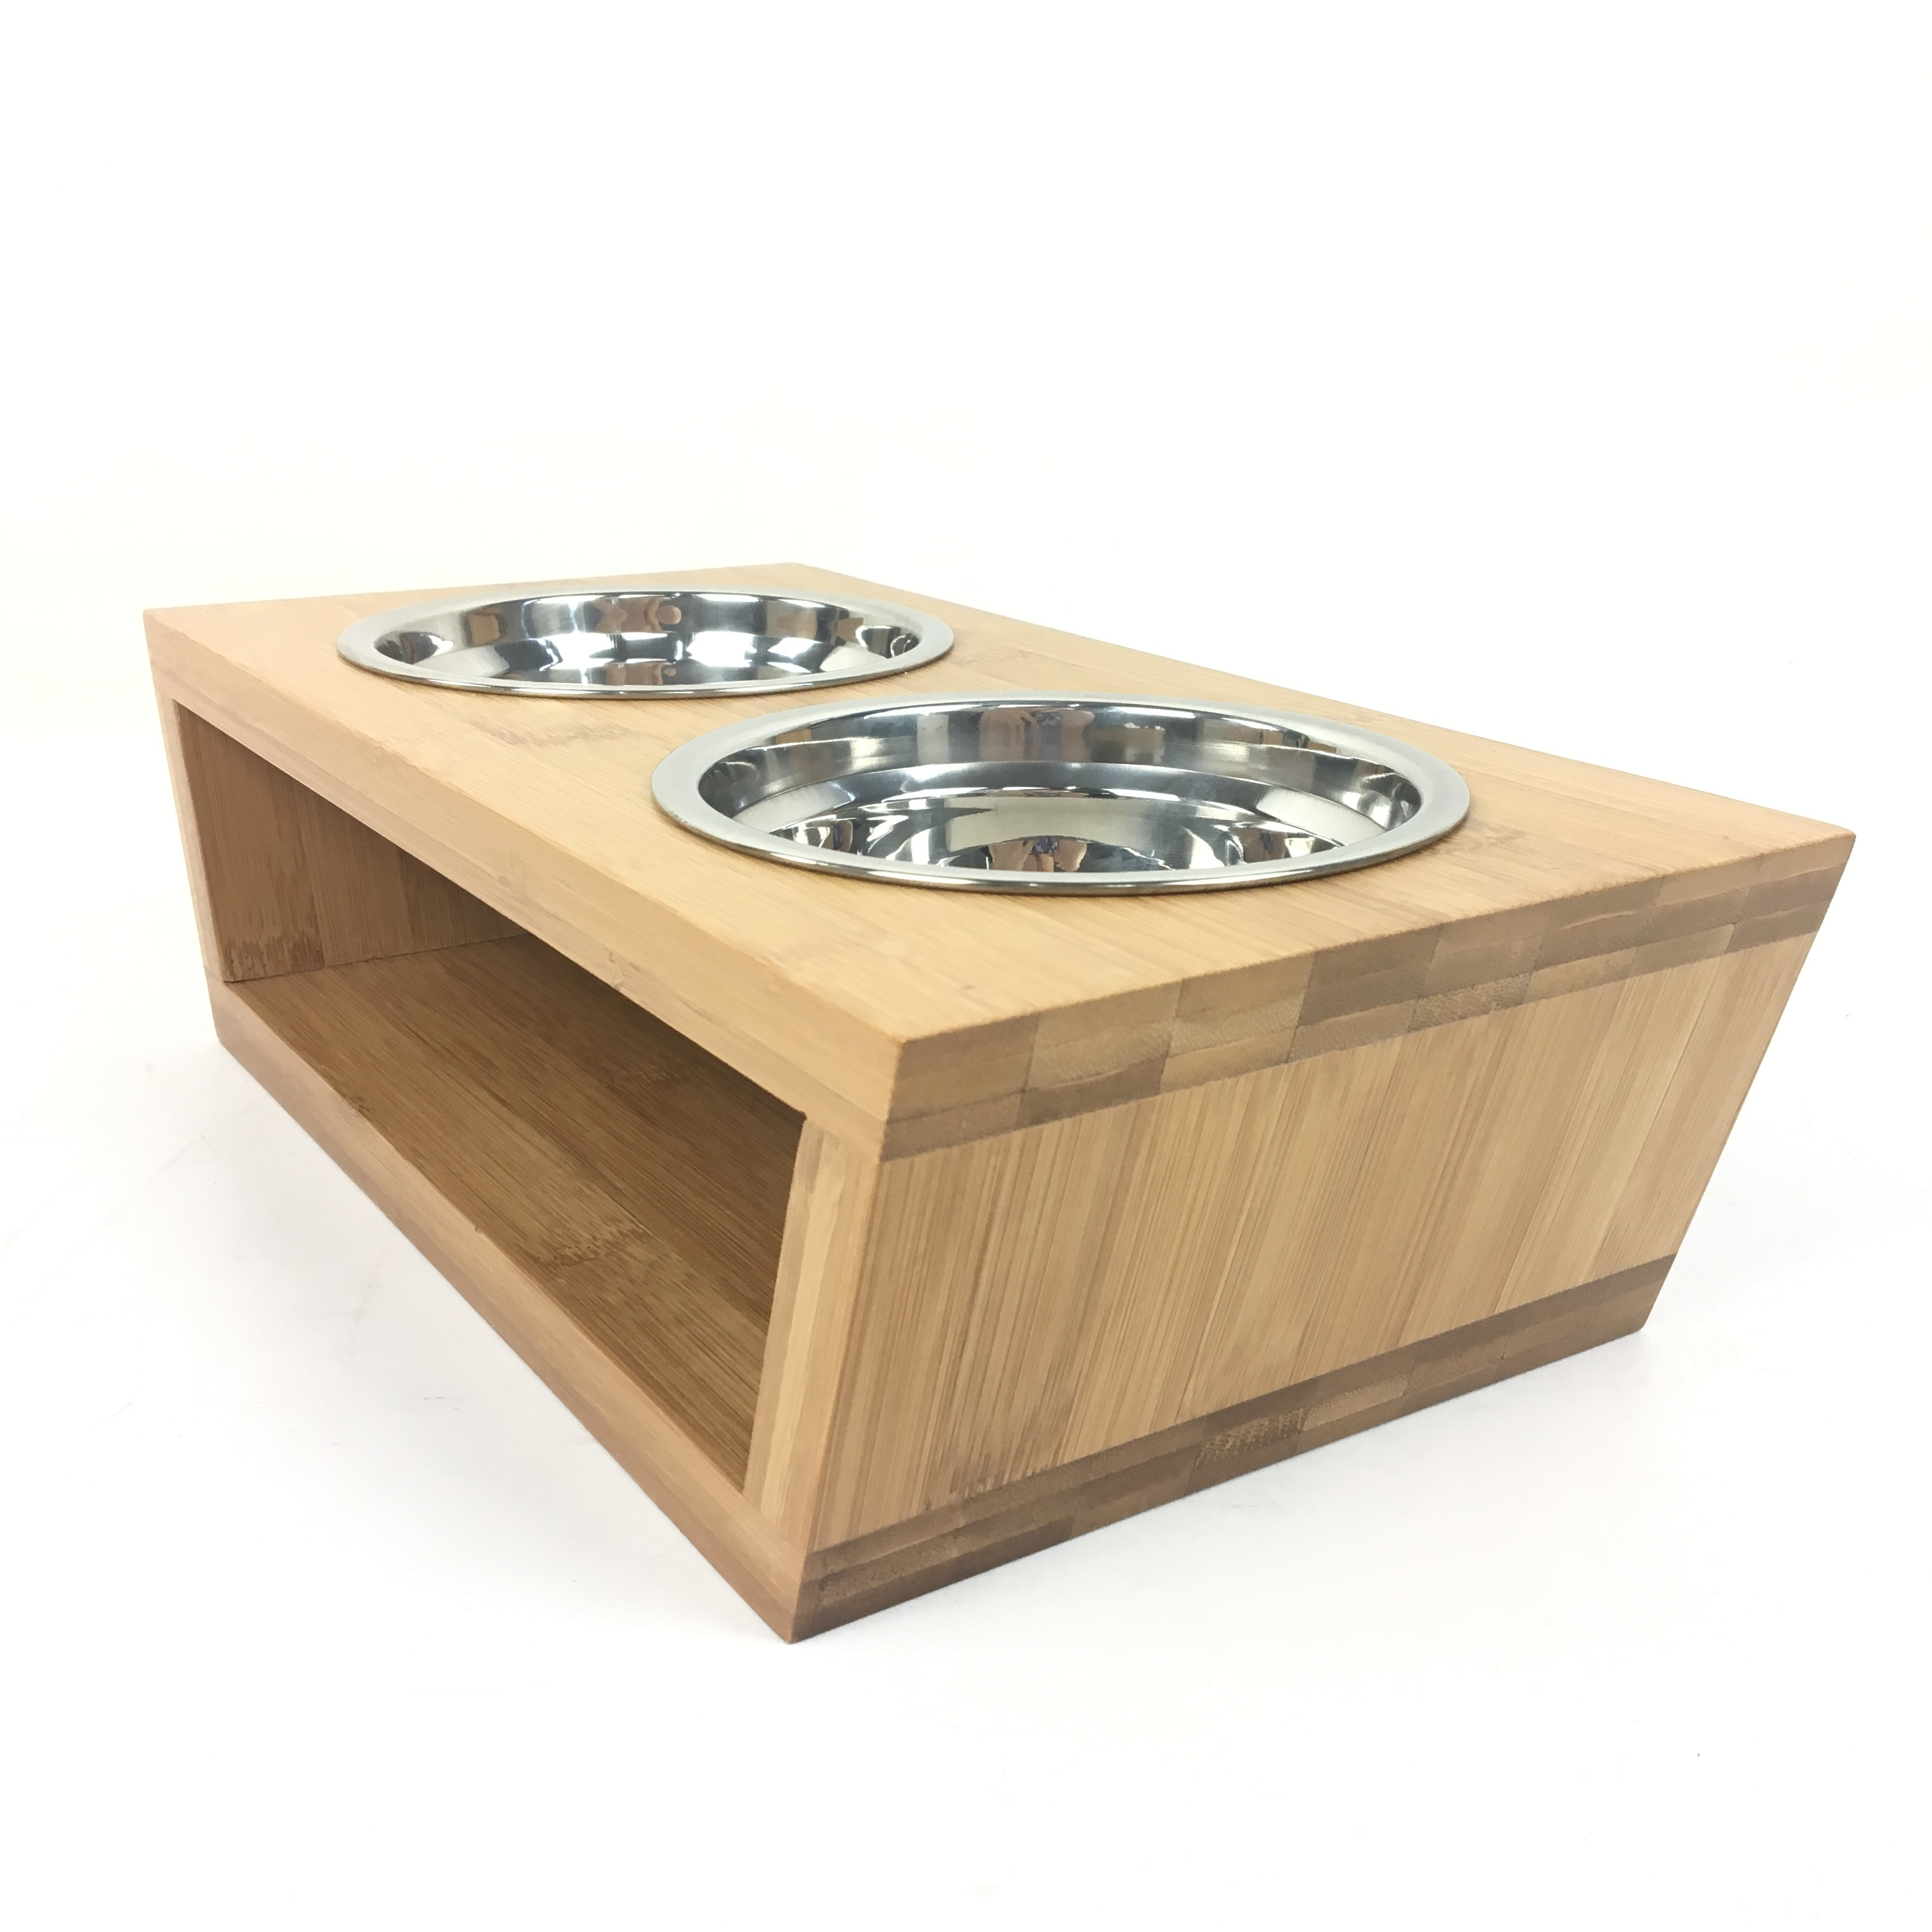 wooden holder bowl food or pet elevated dog cat rustic feeder wood pin small